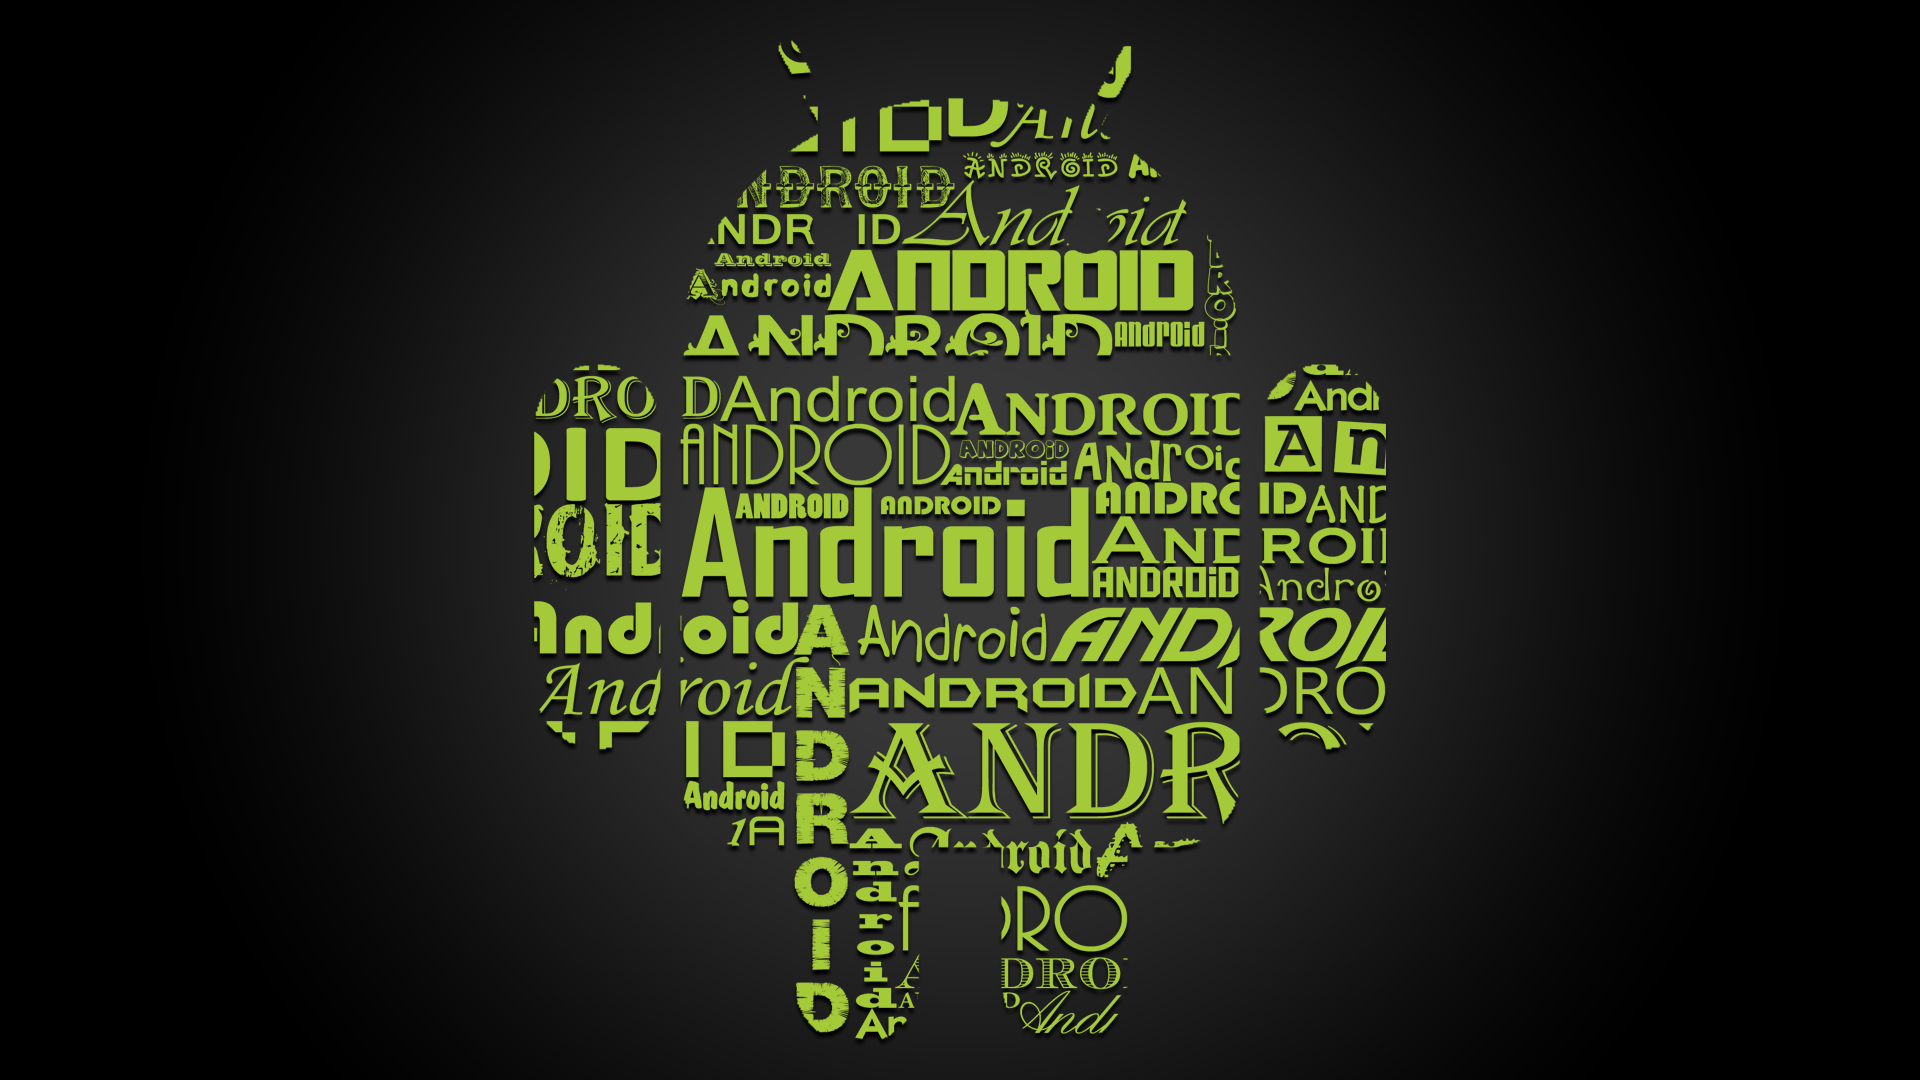 wallpaper-for-android-wallpapers-brands-abstract-picture-wallpapers-for-android